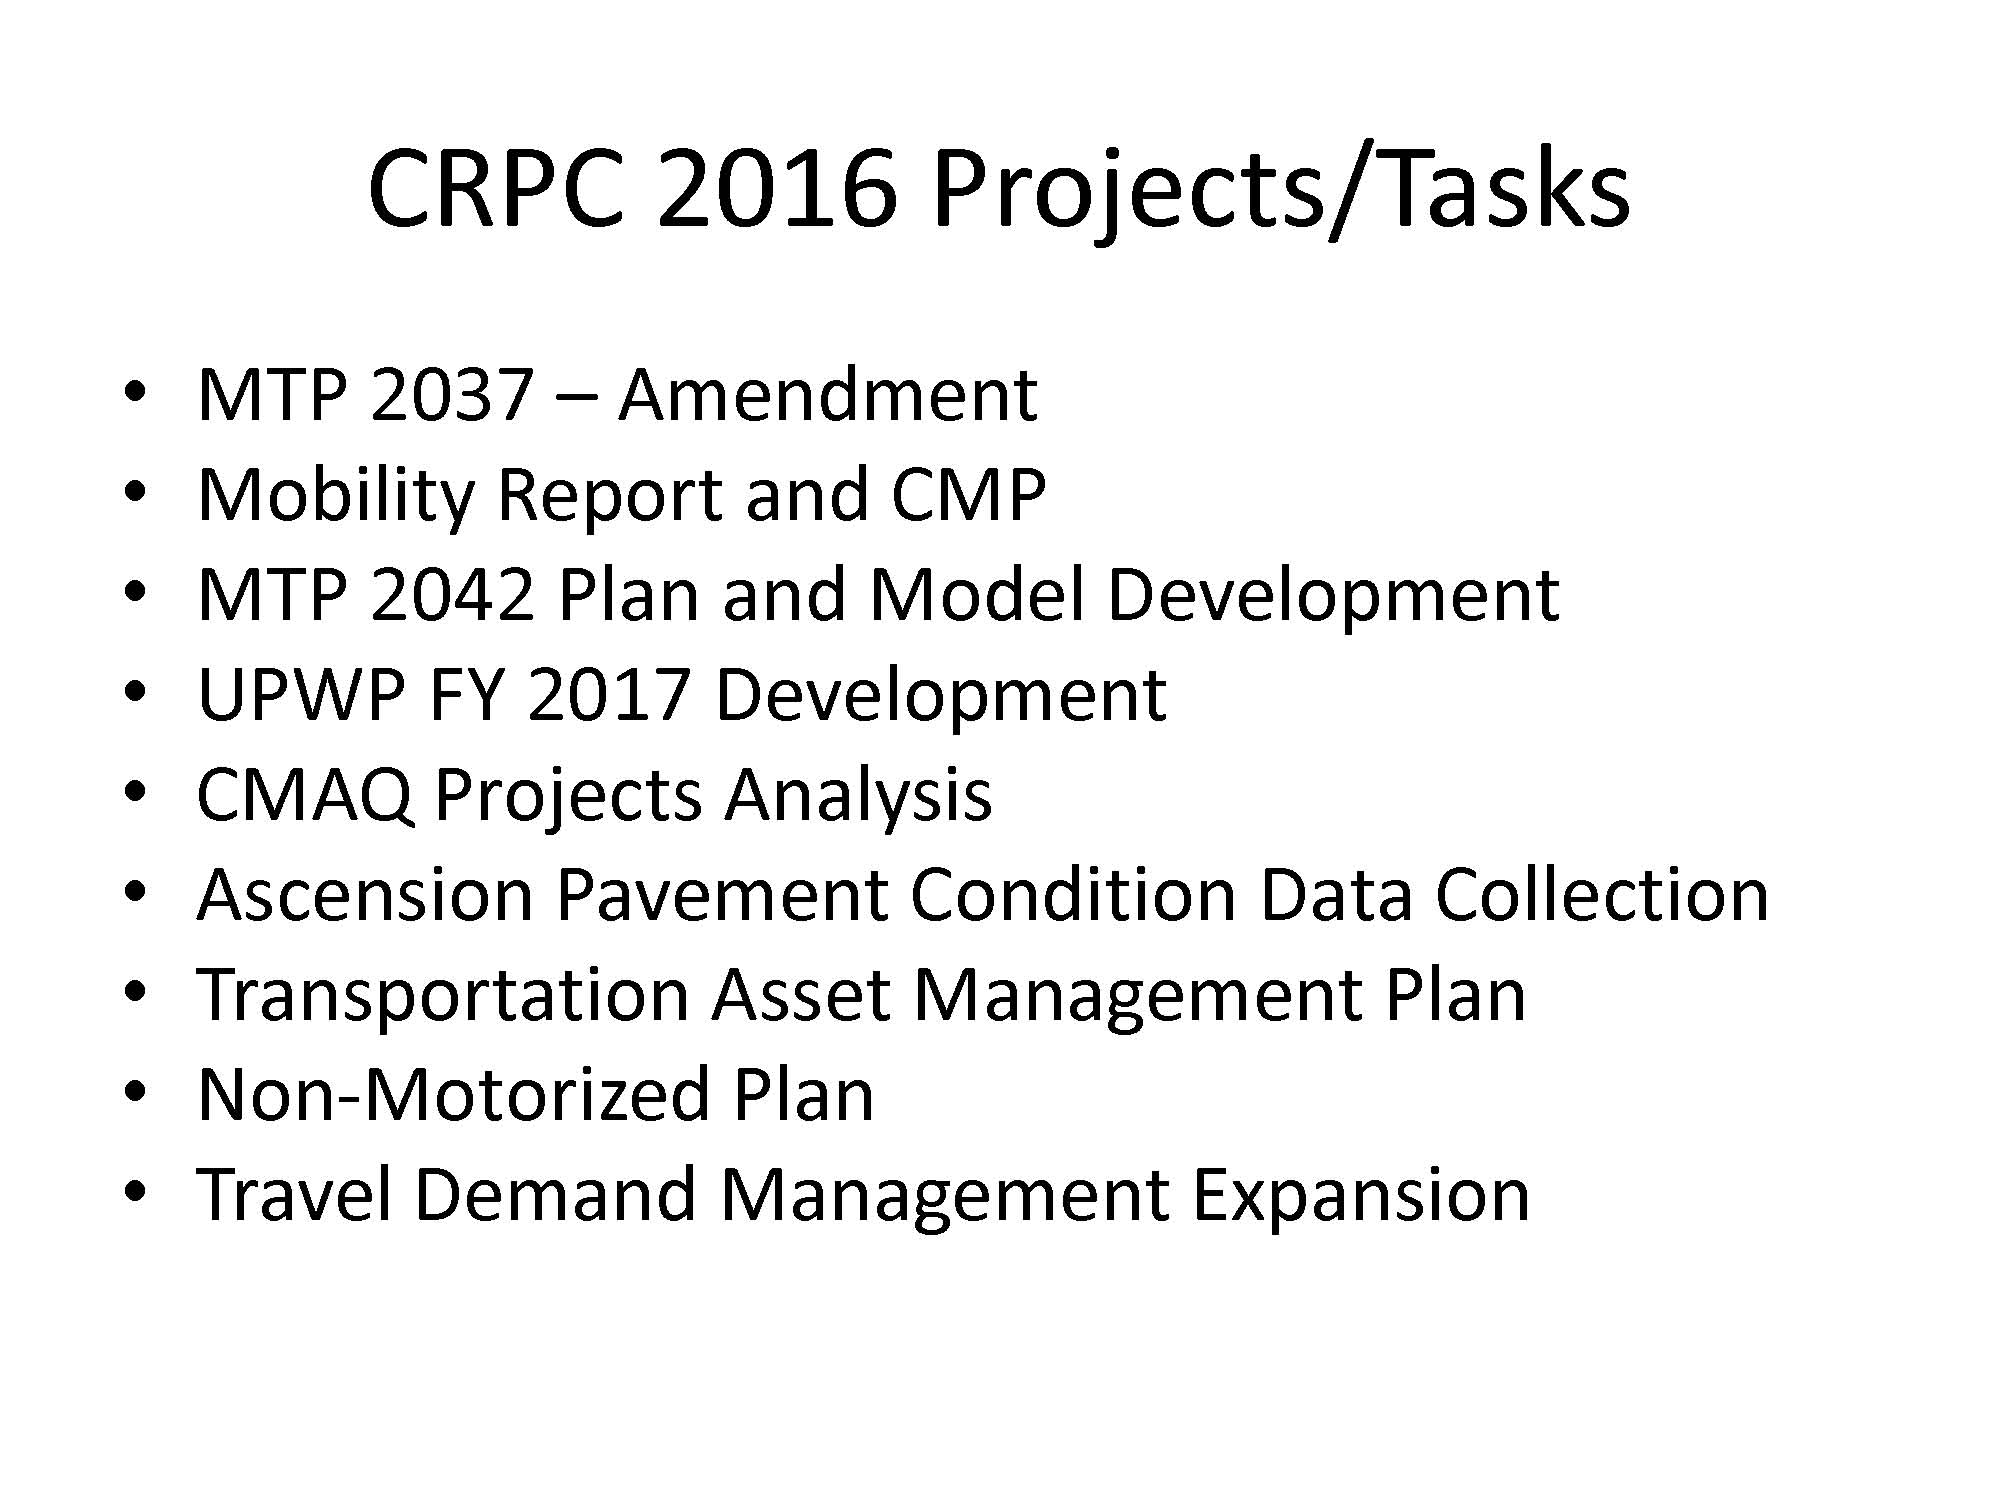 CRPC_Activity_Update_Page_21.jpg